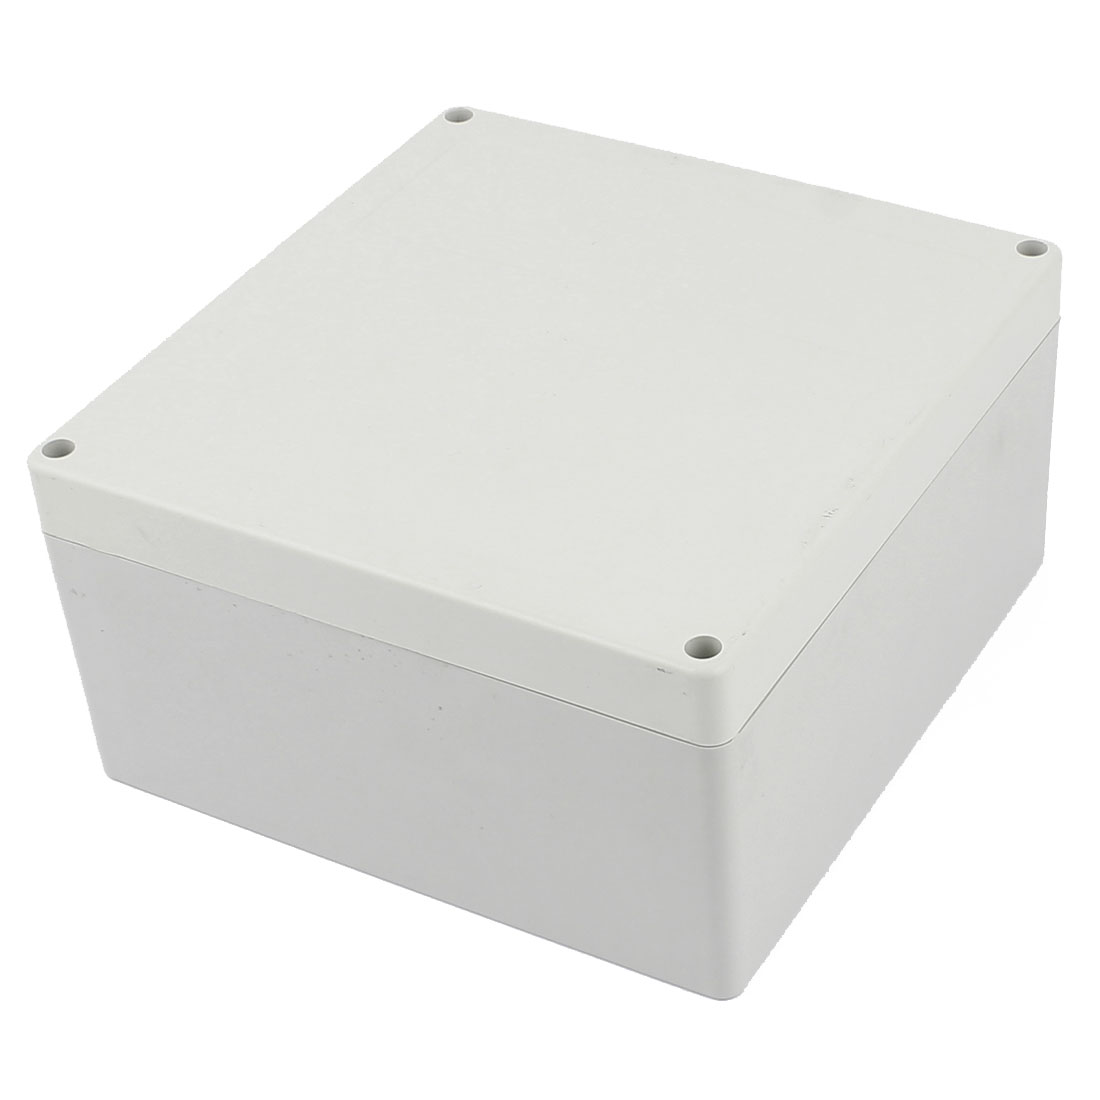 192mm x 188mm x 100mm Rectangular Dustproof IP65 Plastic DIY Junction Box Case